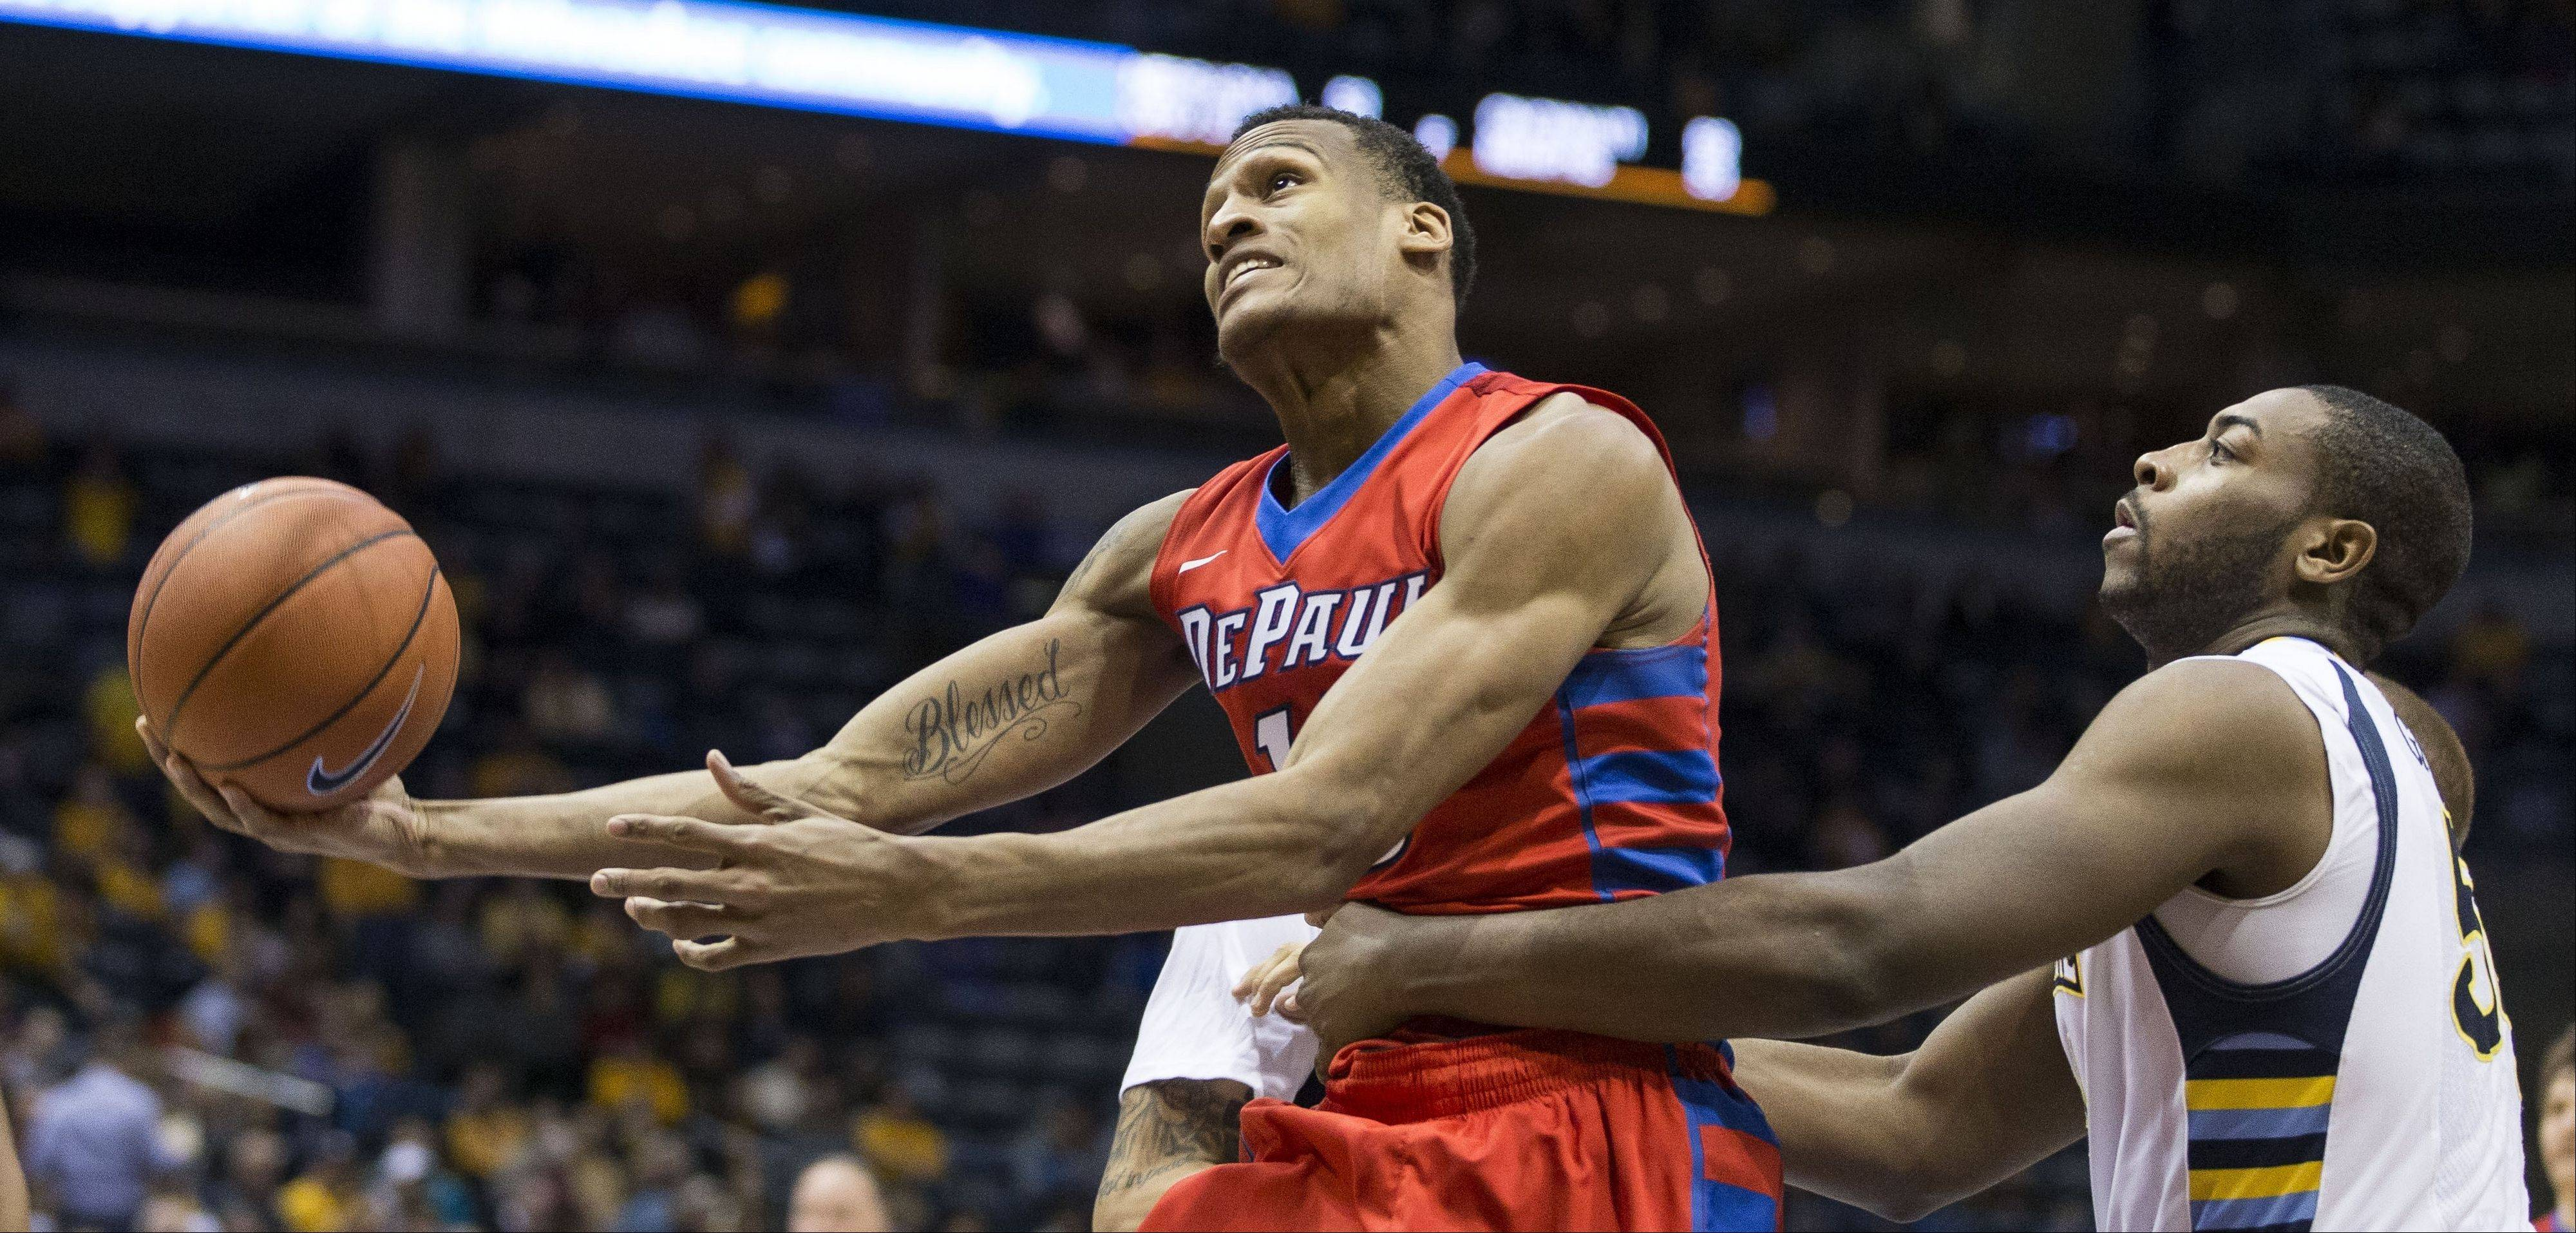 Marquette's Davante Gardner, right, fouls DePaul's Cleveland Melvin as he shoots during the second half of an NCAA college basketball game Saturday, Jan. 4, 2014, in Milwaukee.